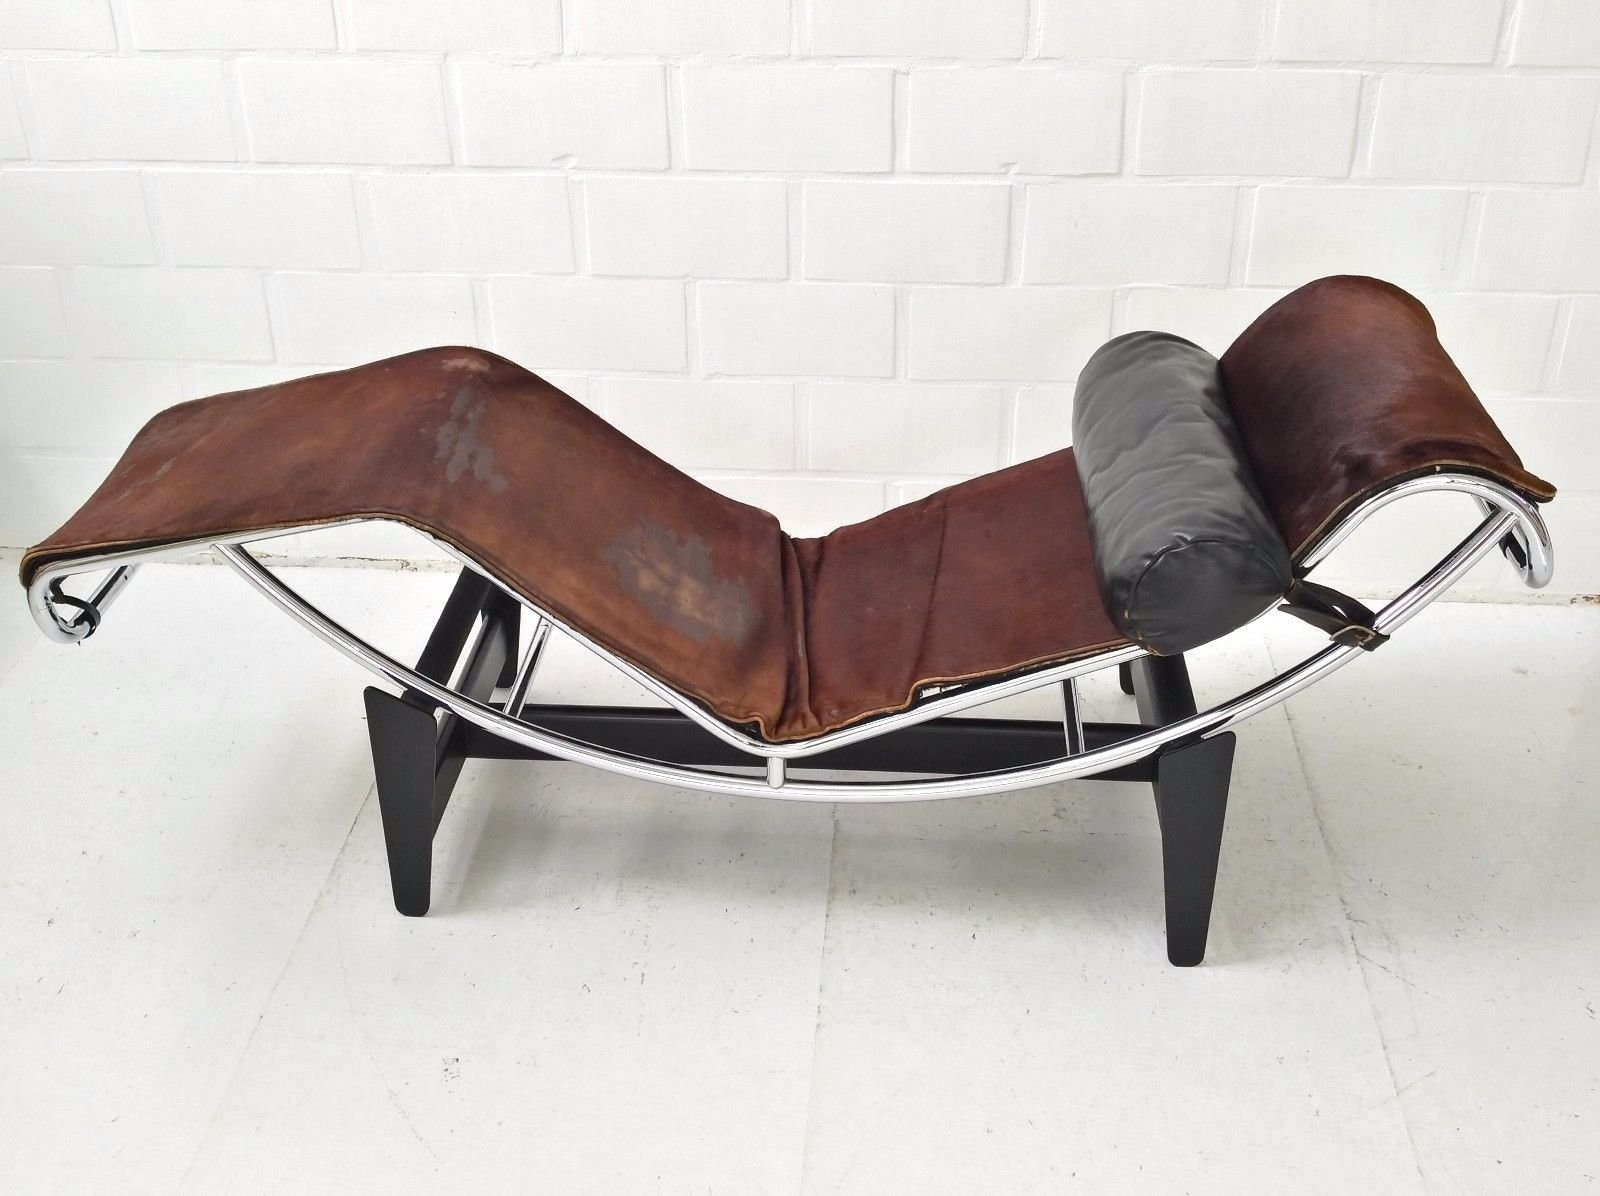 Lc4 chaise longue by le corbusier charlotte perriand for Chaise longue by le corbusier